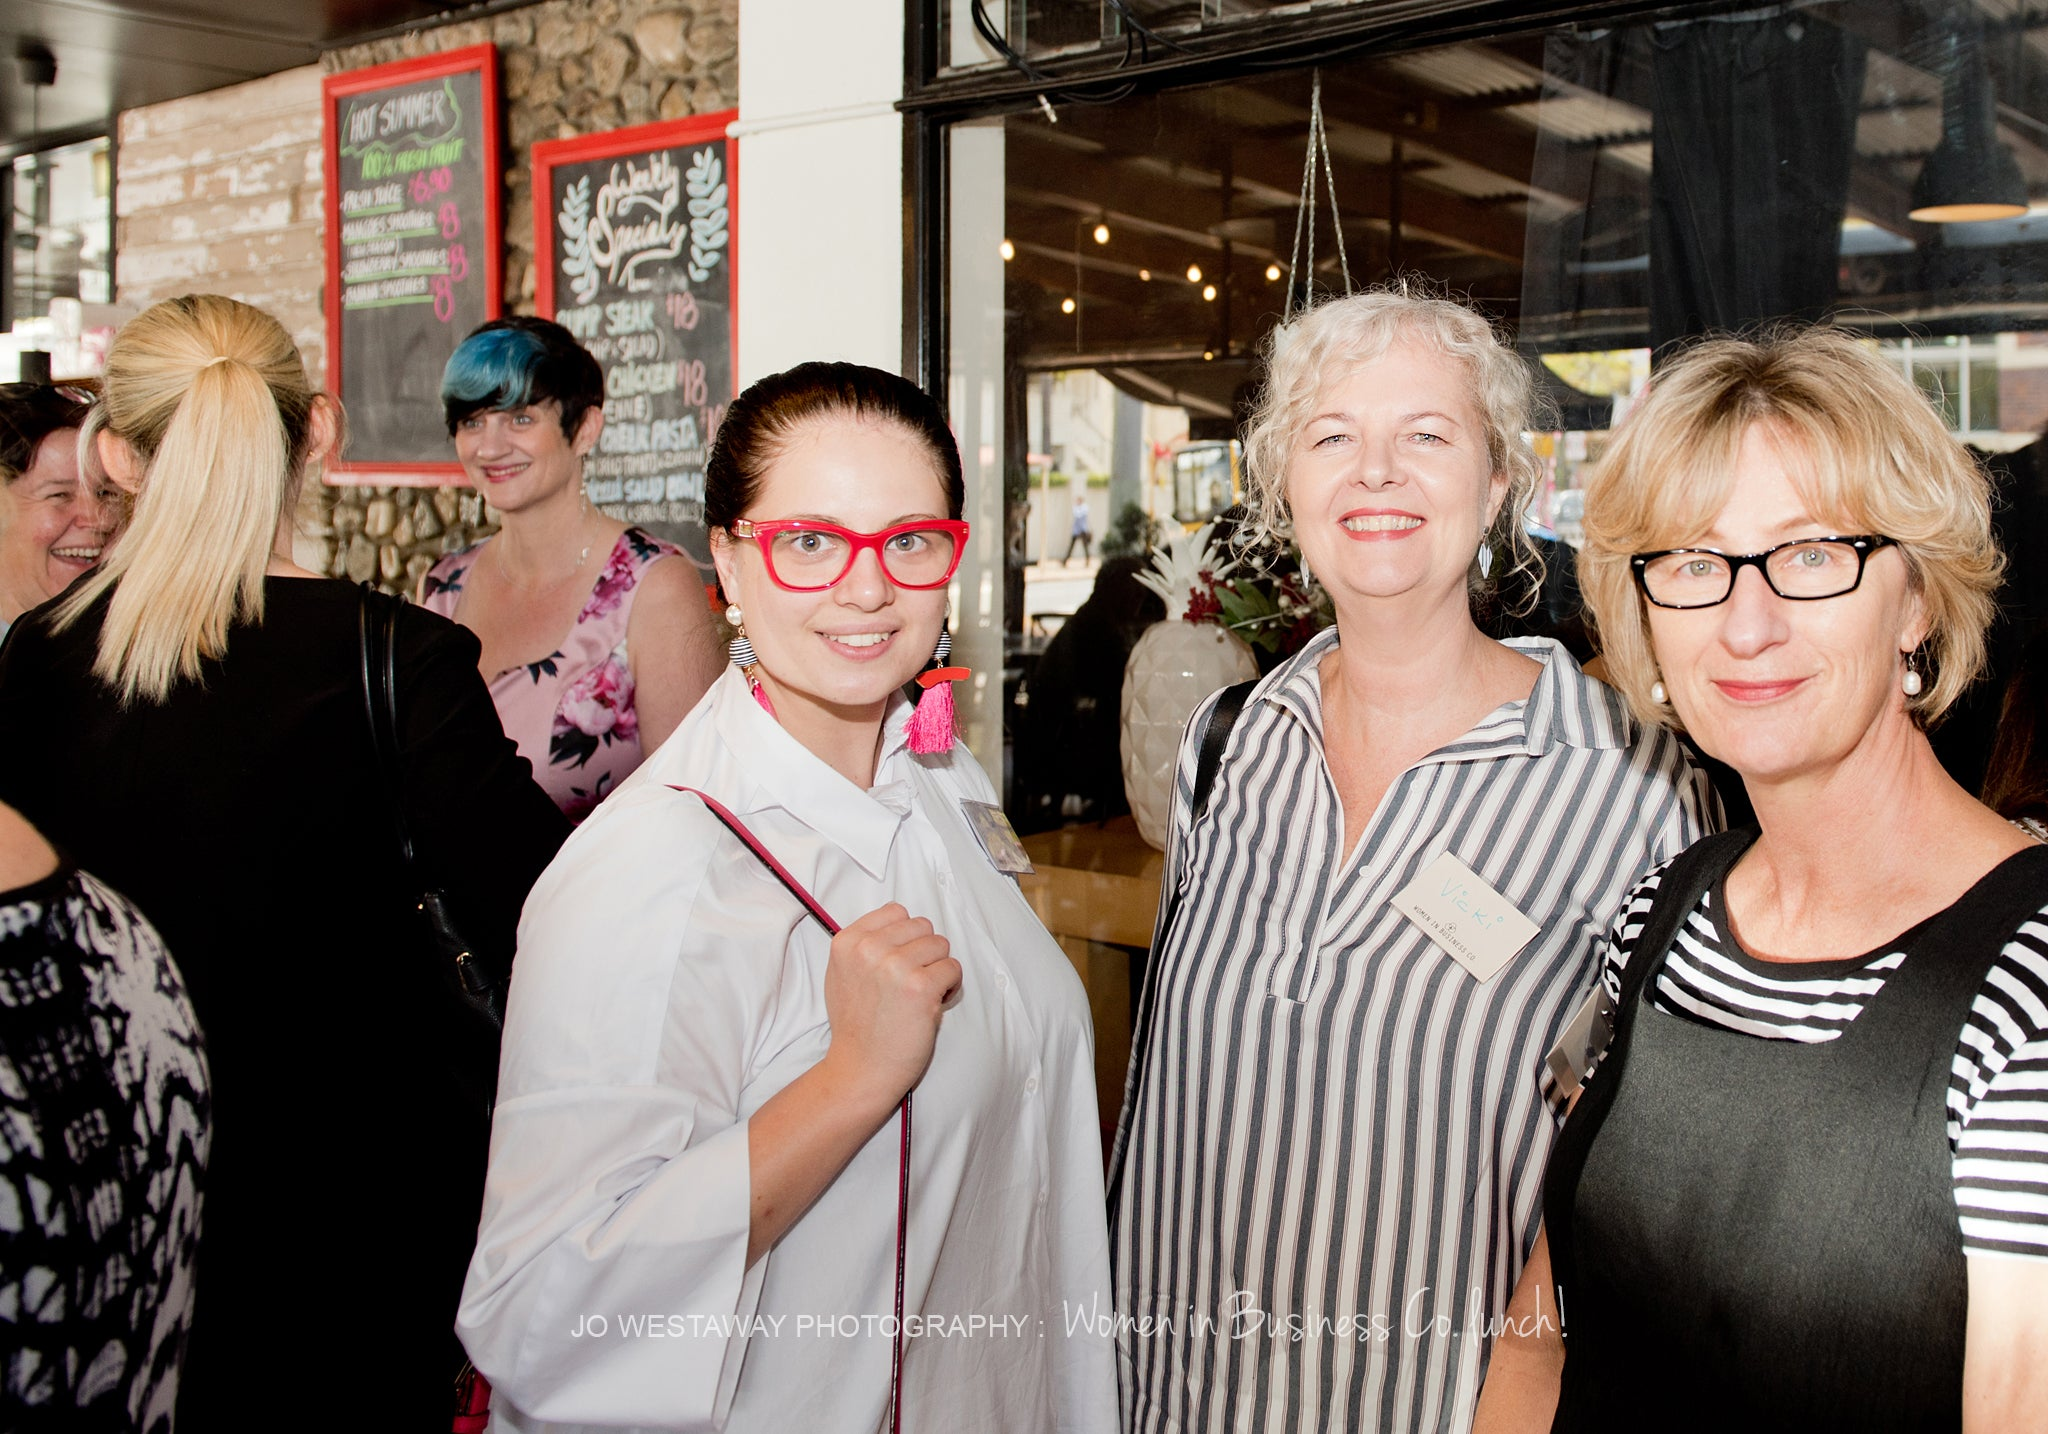 Event photos by Brisbane photographer - great for marketing